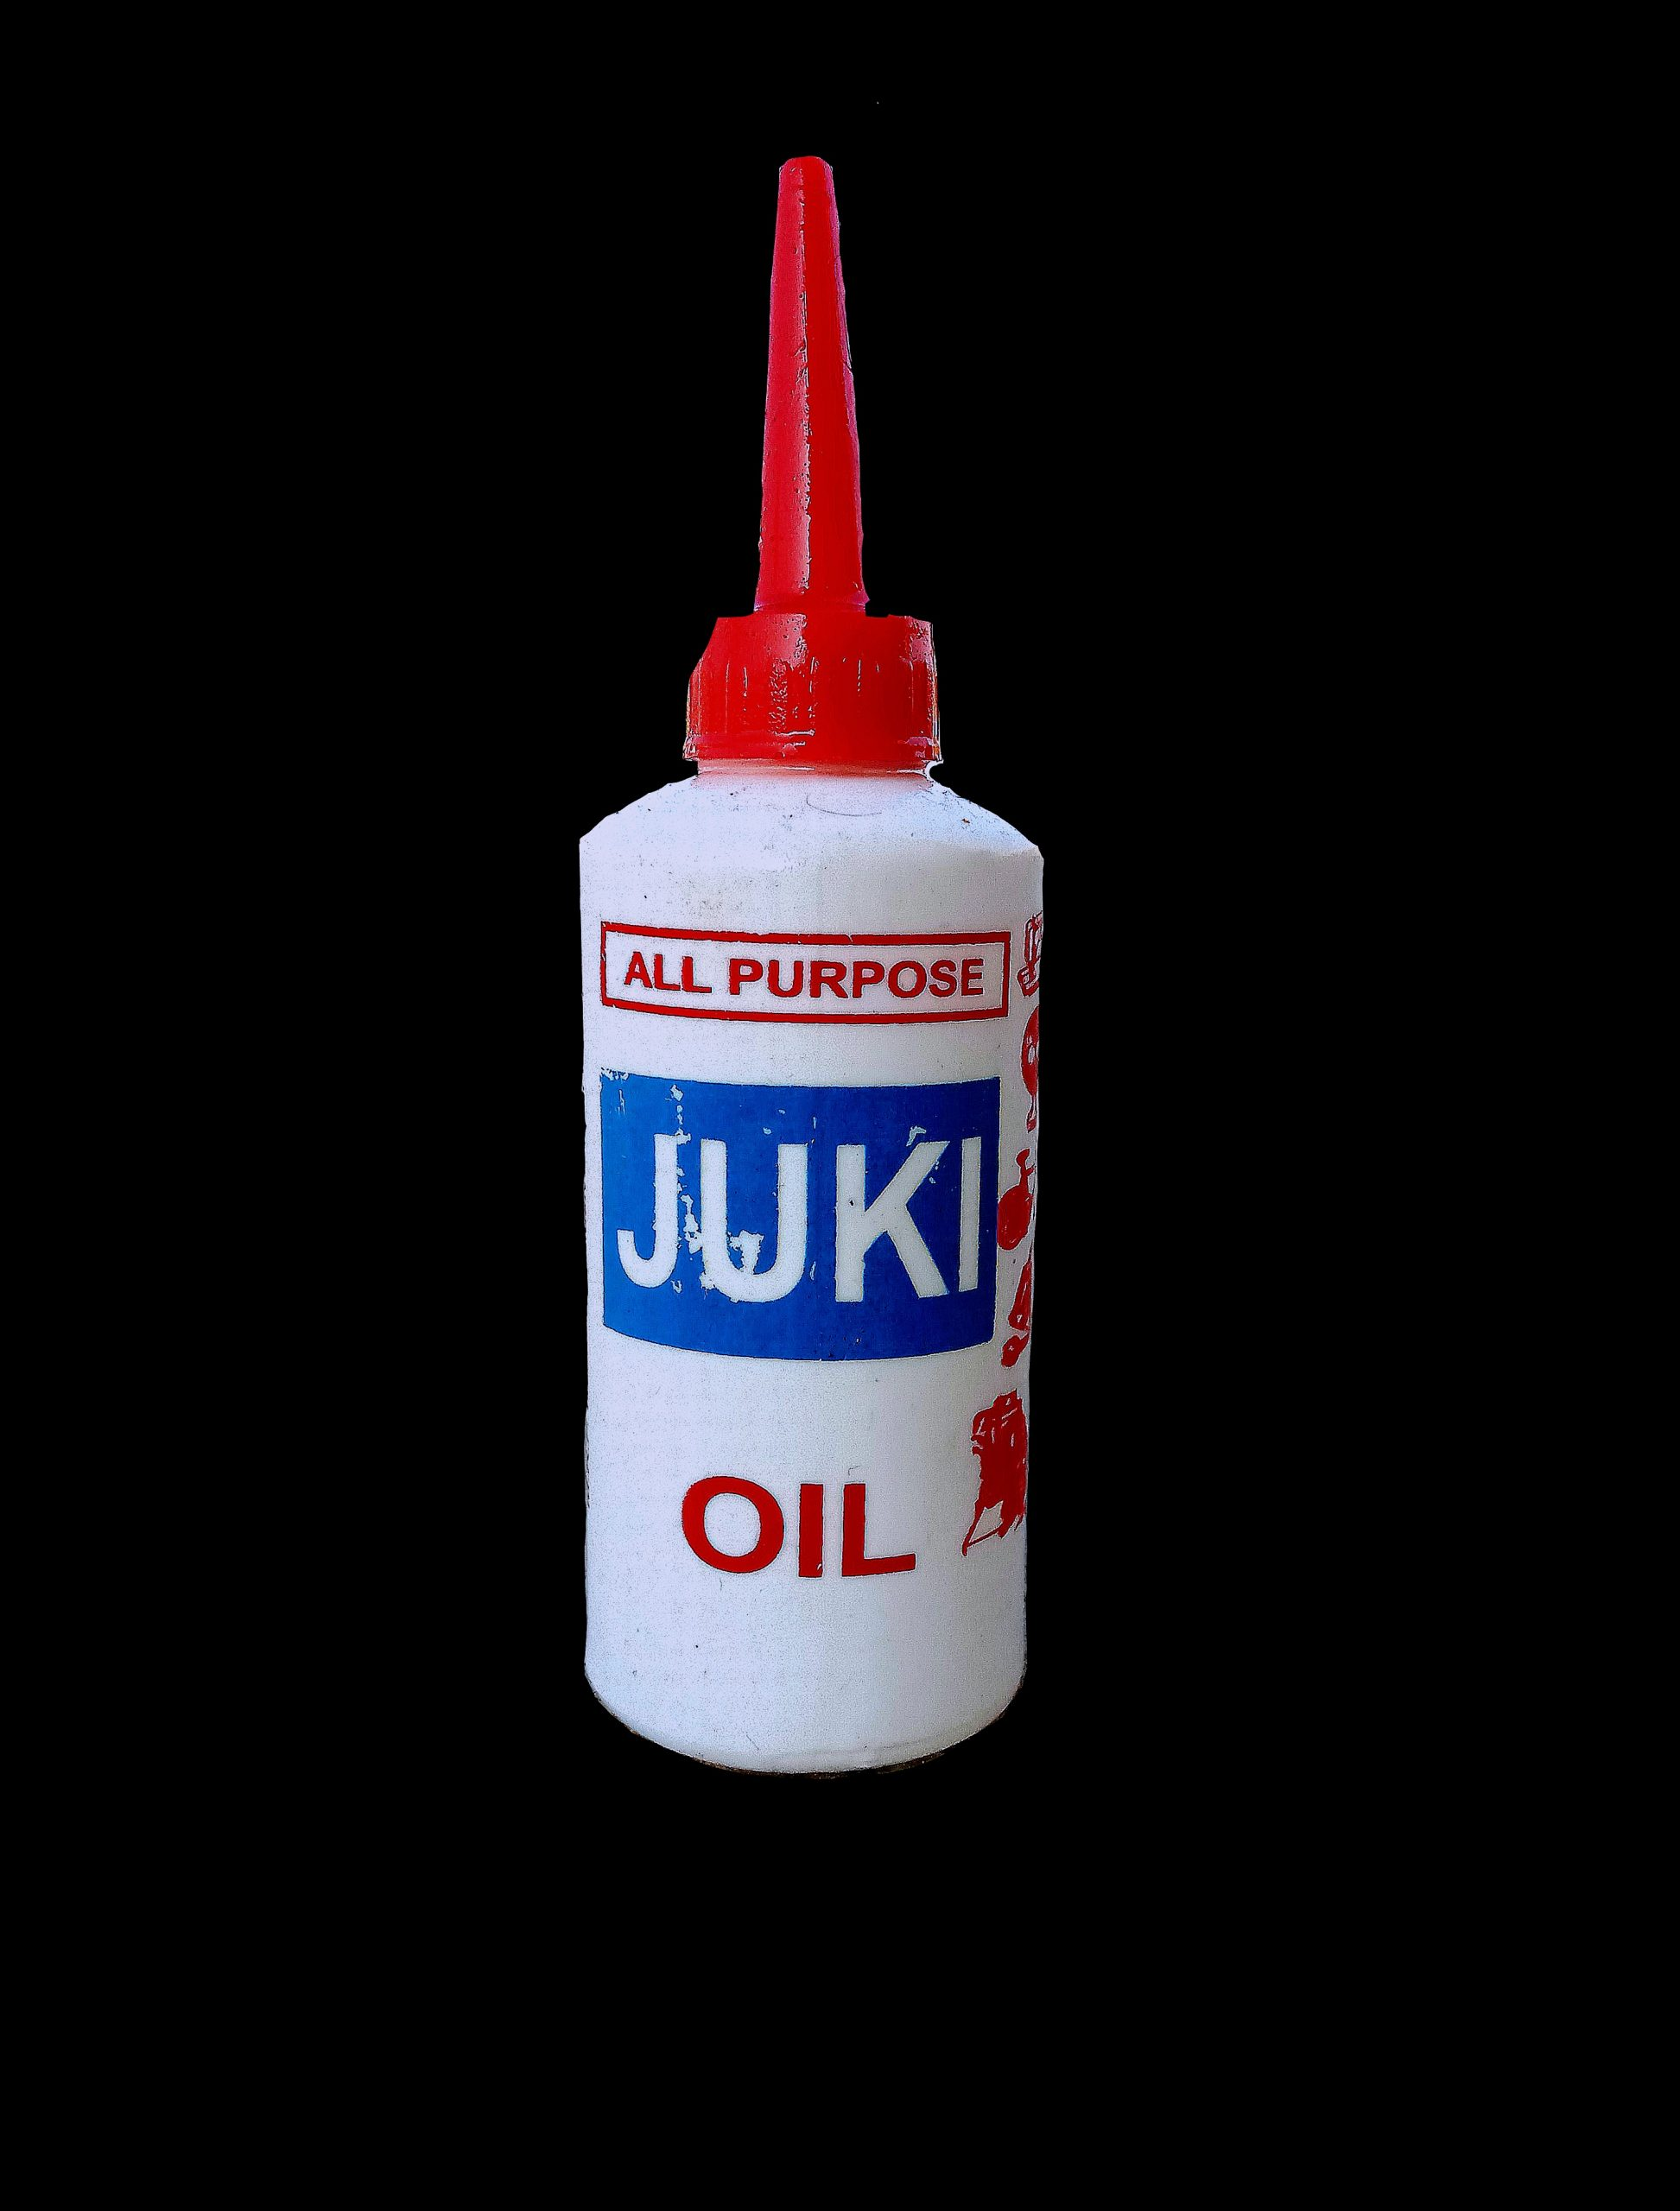 A oil can